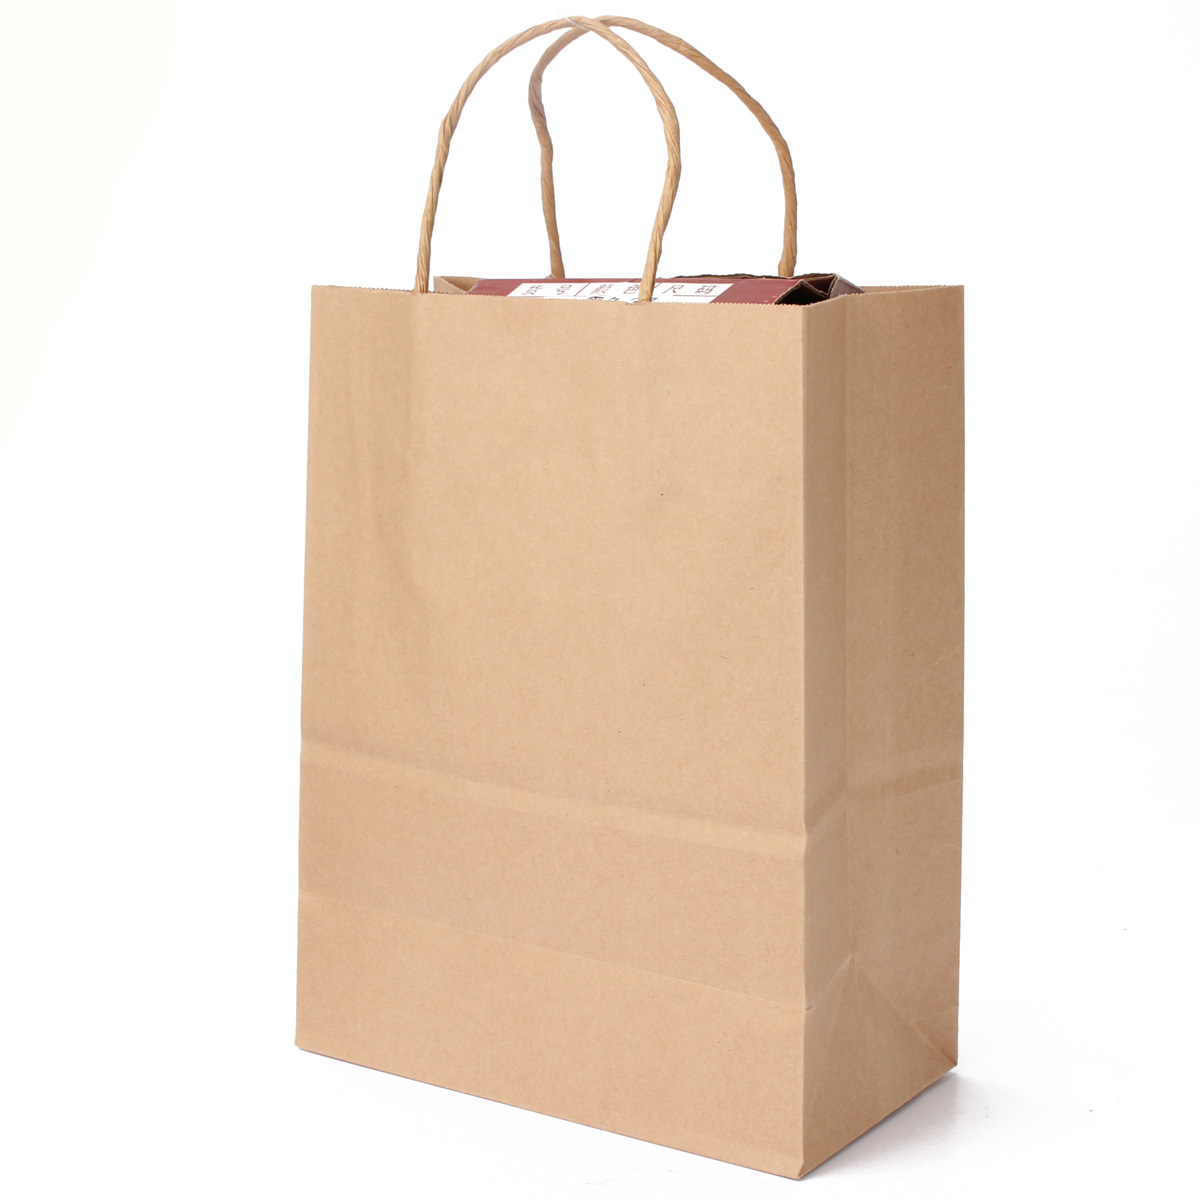 Brown Paper Bags With Handles Kmart 2 50pcs Brown Kraft Twisted Handle Paper Carrier Bags